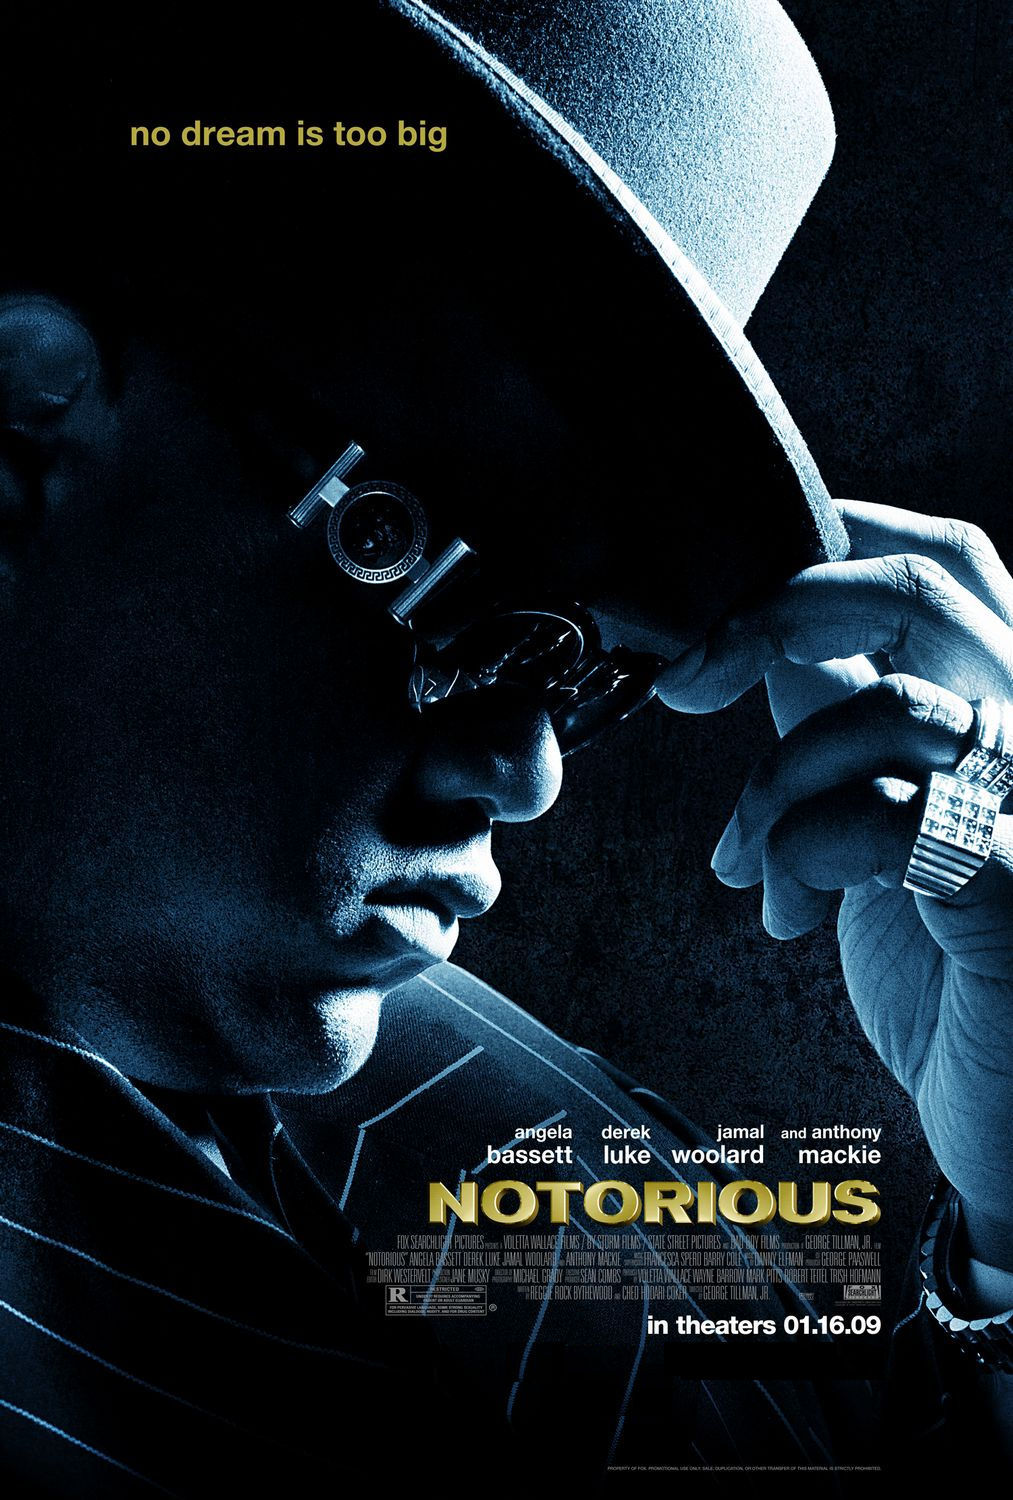 BACK IN THE DAY |1/16/09| The movie, Notorious, is released in theaters.